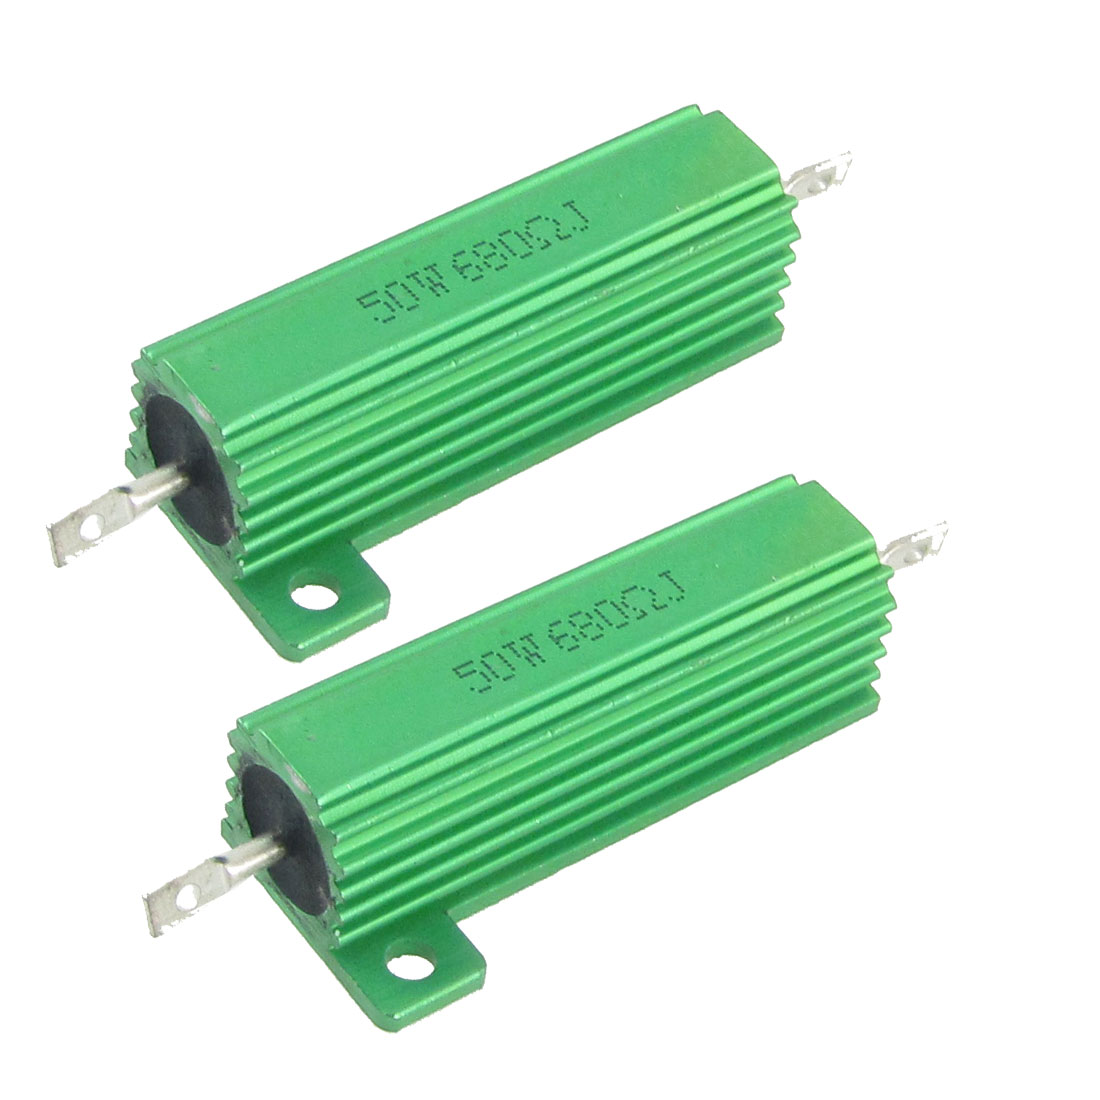 50W 680 Ohm Screw Tap Mounted Aluminum Housed Wirewound Resistors 2 Pcs